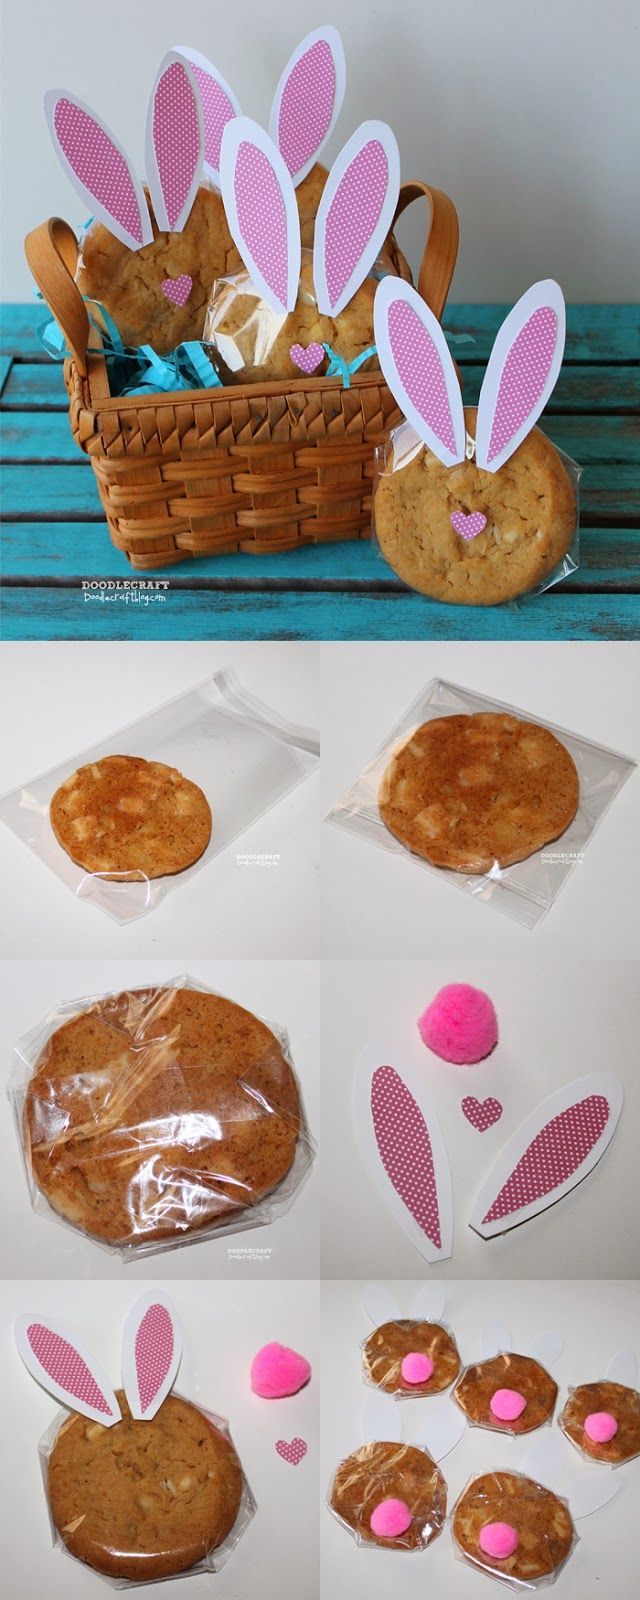 Cookies bunny ear cutouts a basket cellophane and a fuzzy tail cookies bunny ear cutouts a basket cellophane and a fuzzy tail and youre all set for easter thanks doodlecraft negle Images